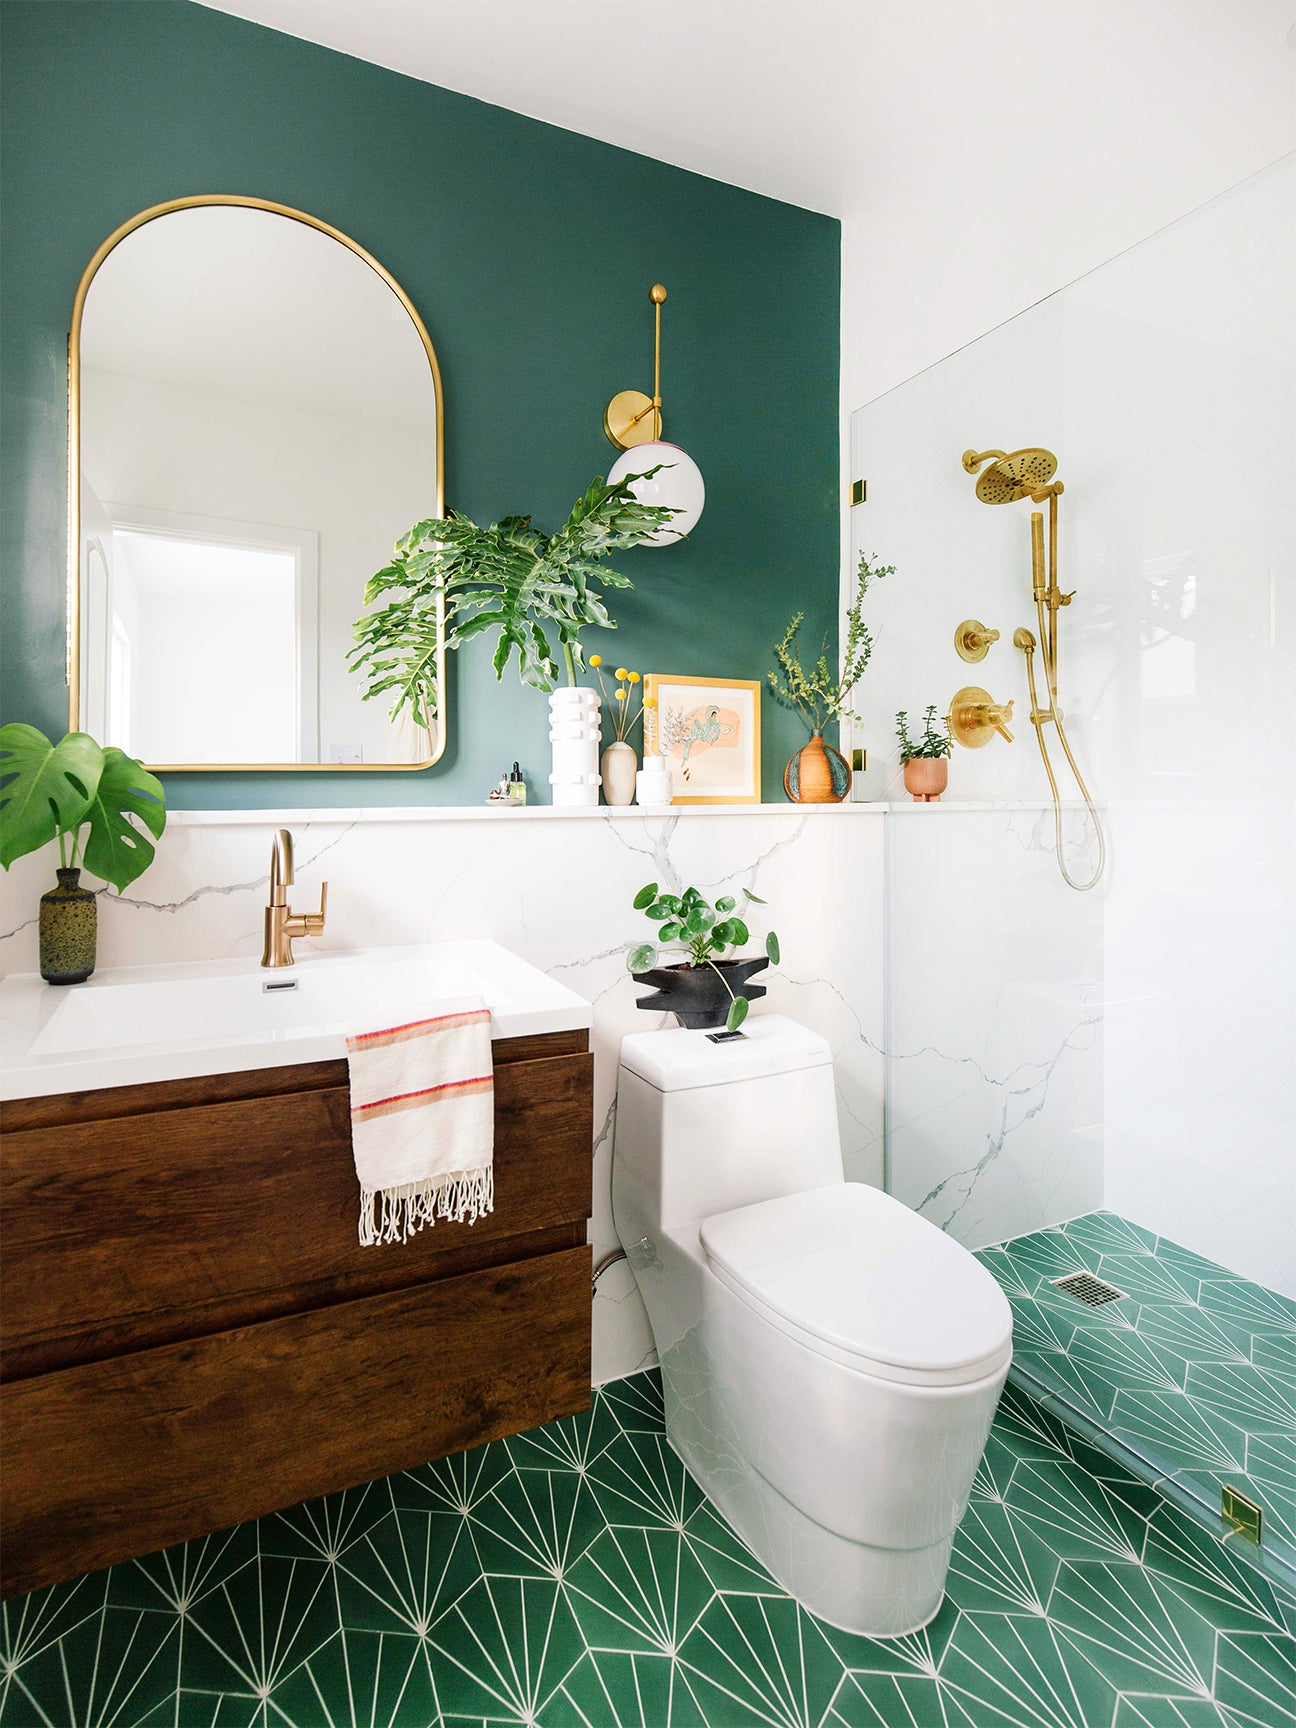 4 Bathroom Accent Wall Ideas Because They Re The Next Big Trend